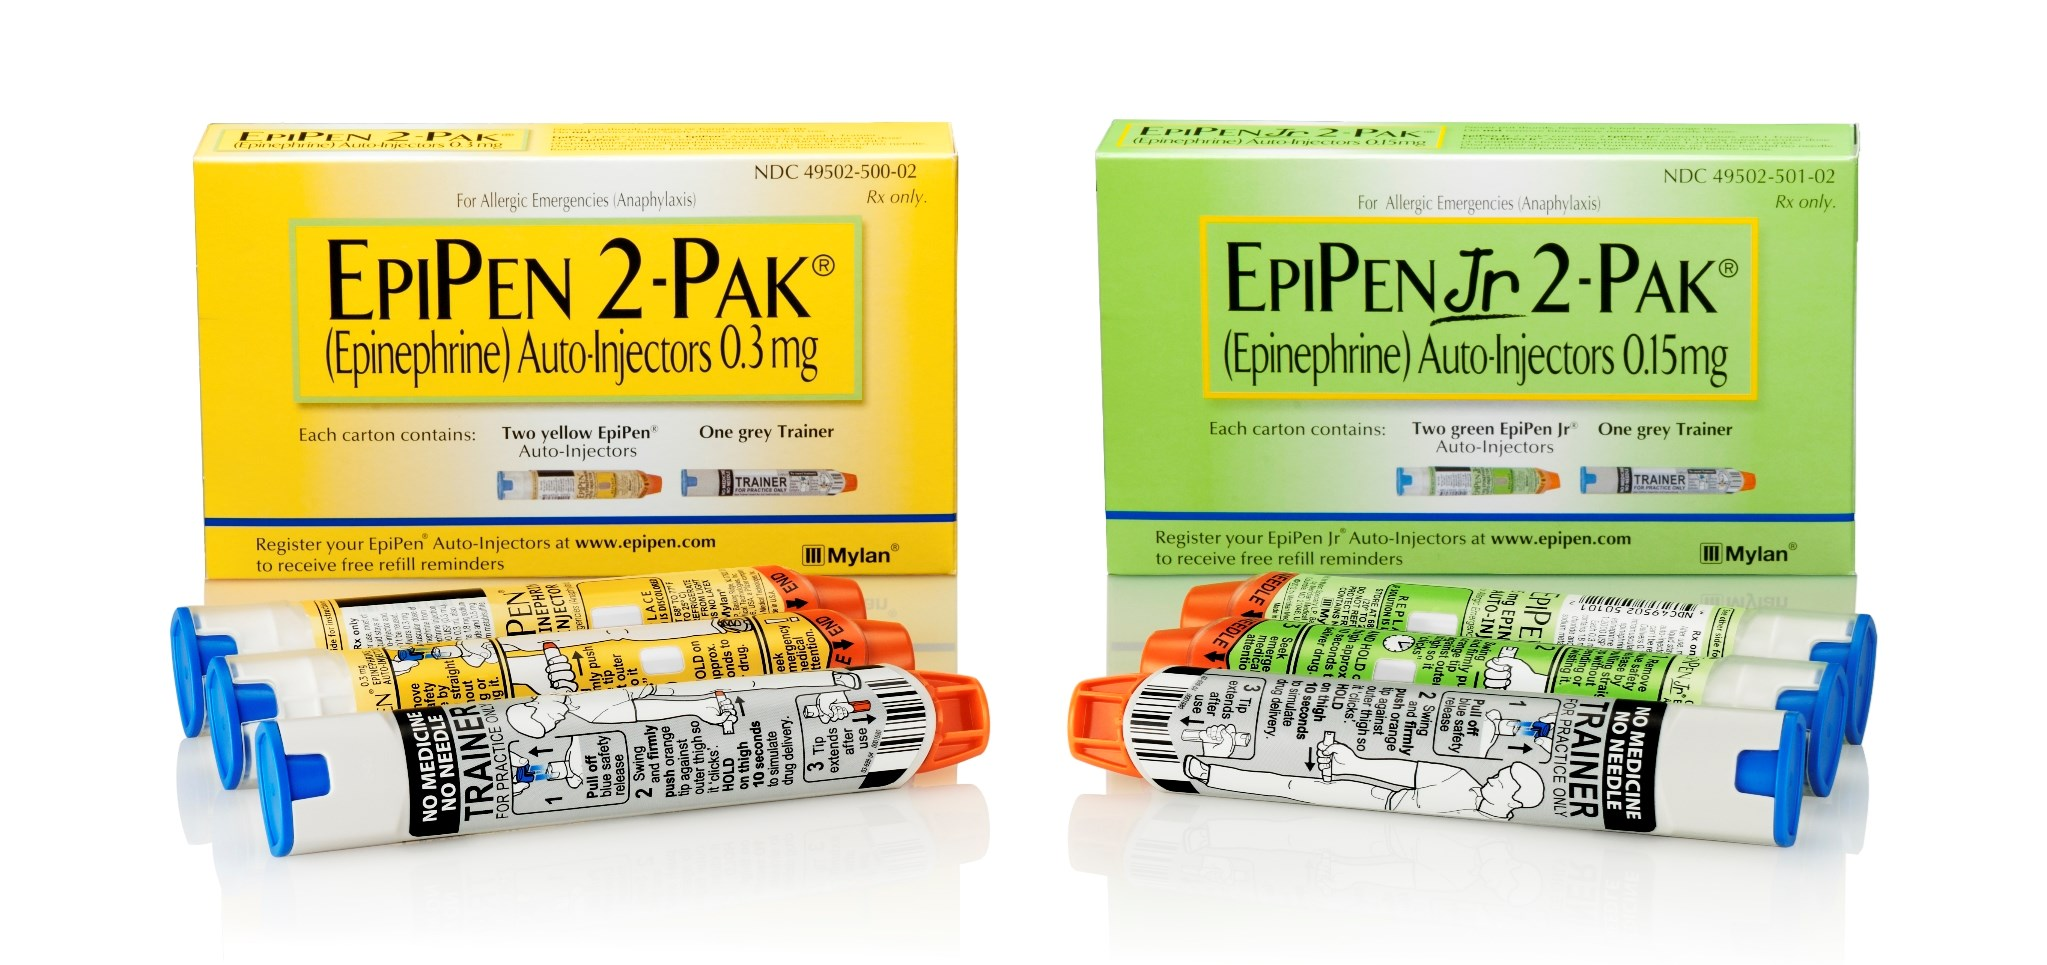 Mylan's branded ad spending on the EpiPen rose 357% — to $43 million in 2015 — over five years